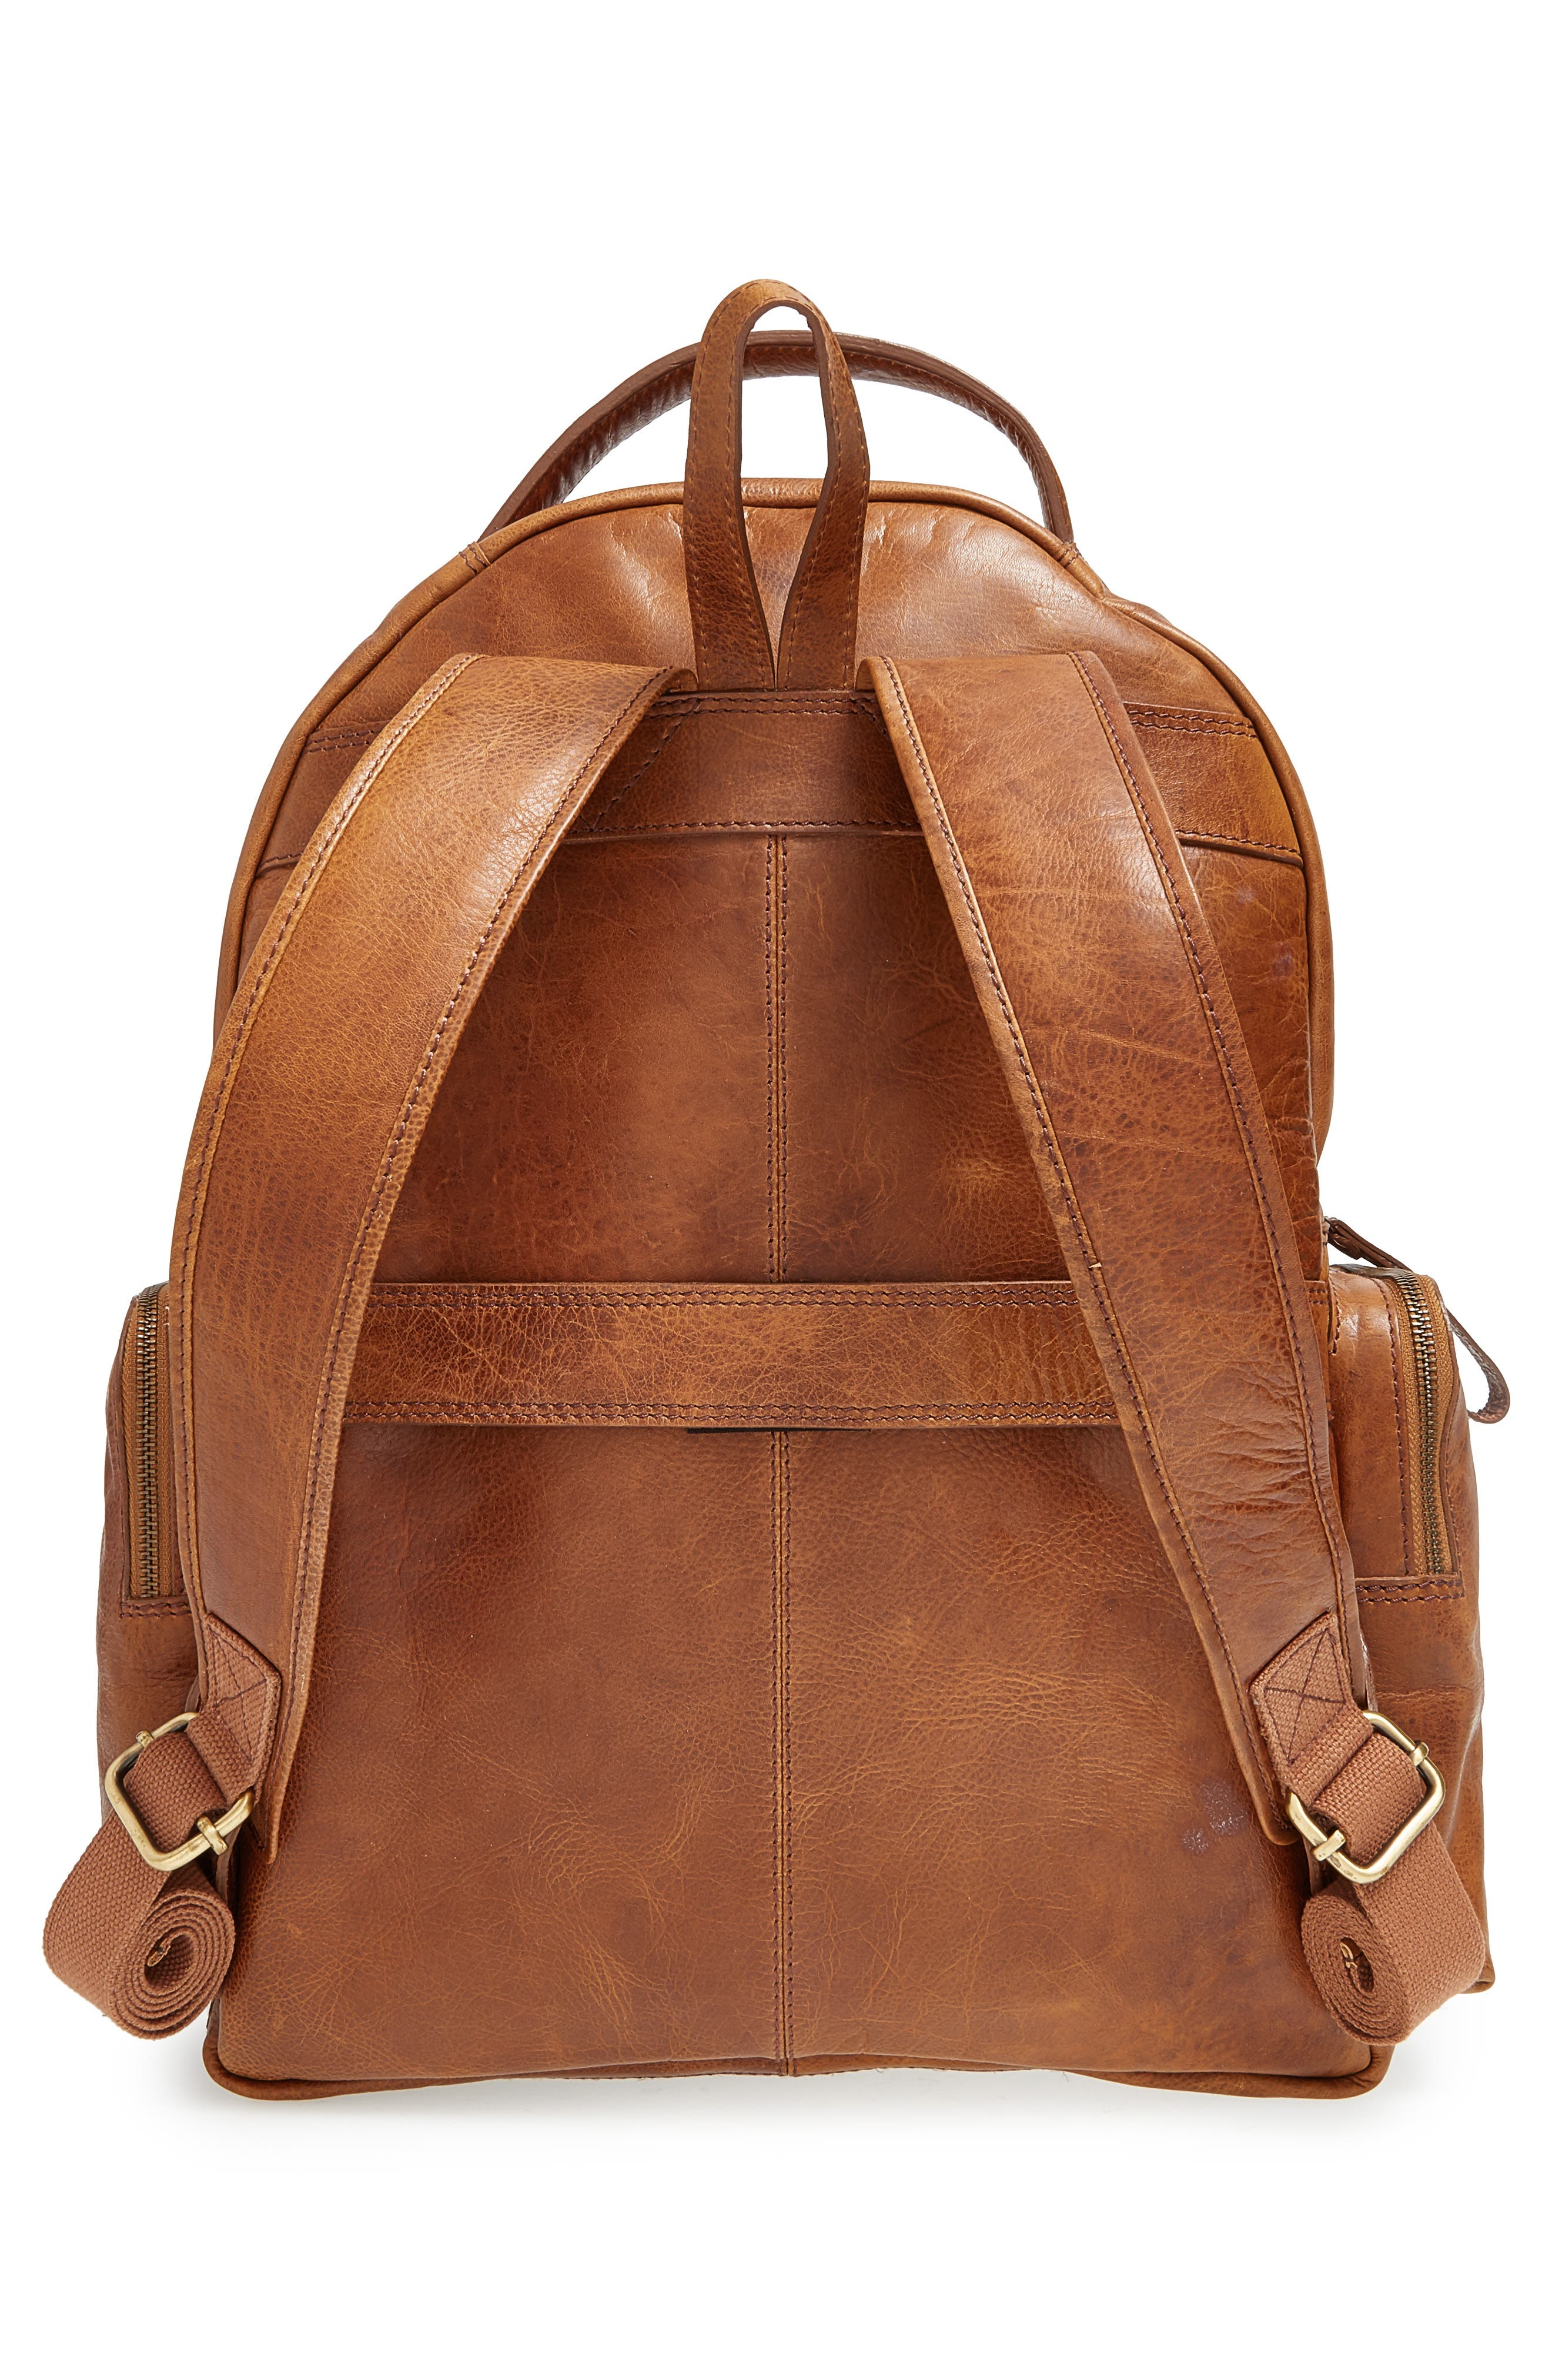 'Rugged' Leather Backpack,                             Alternate thumbnail 5, color,                             202